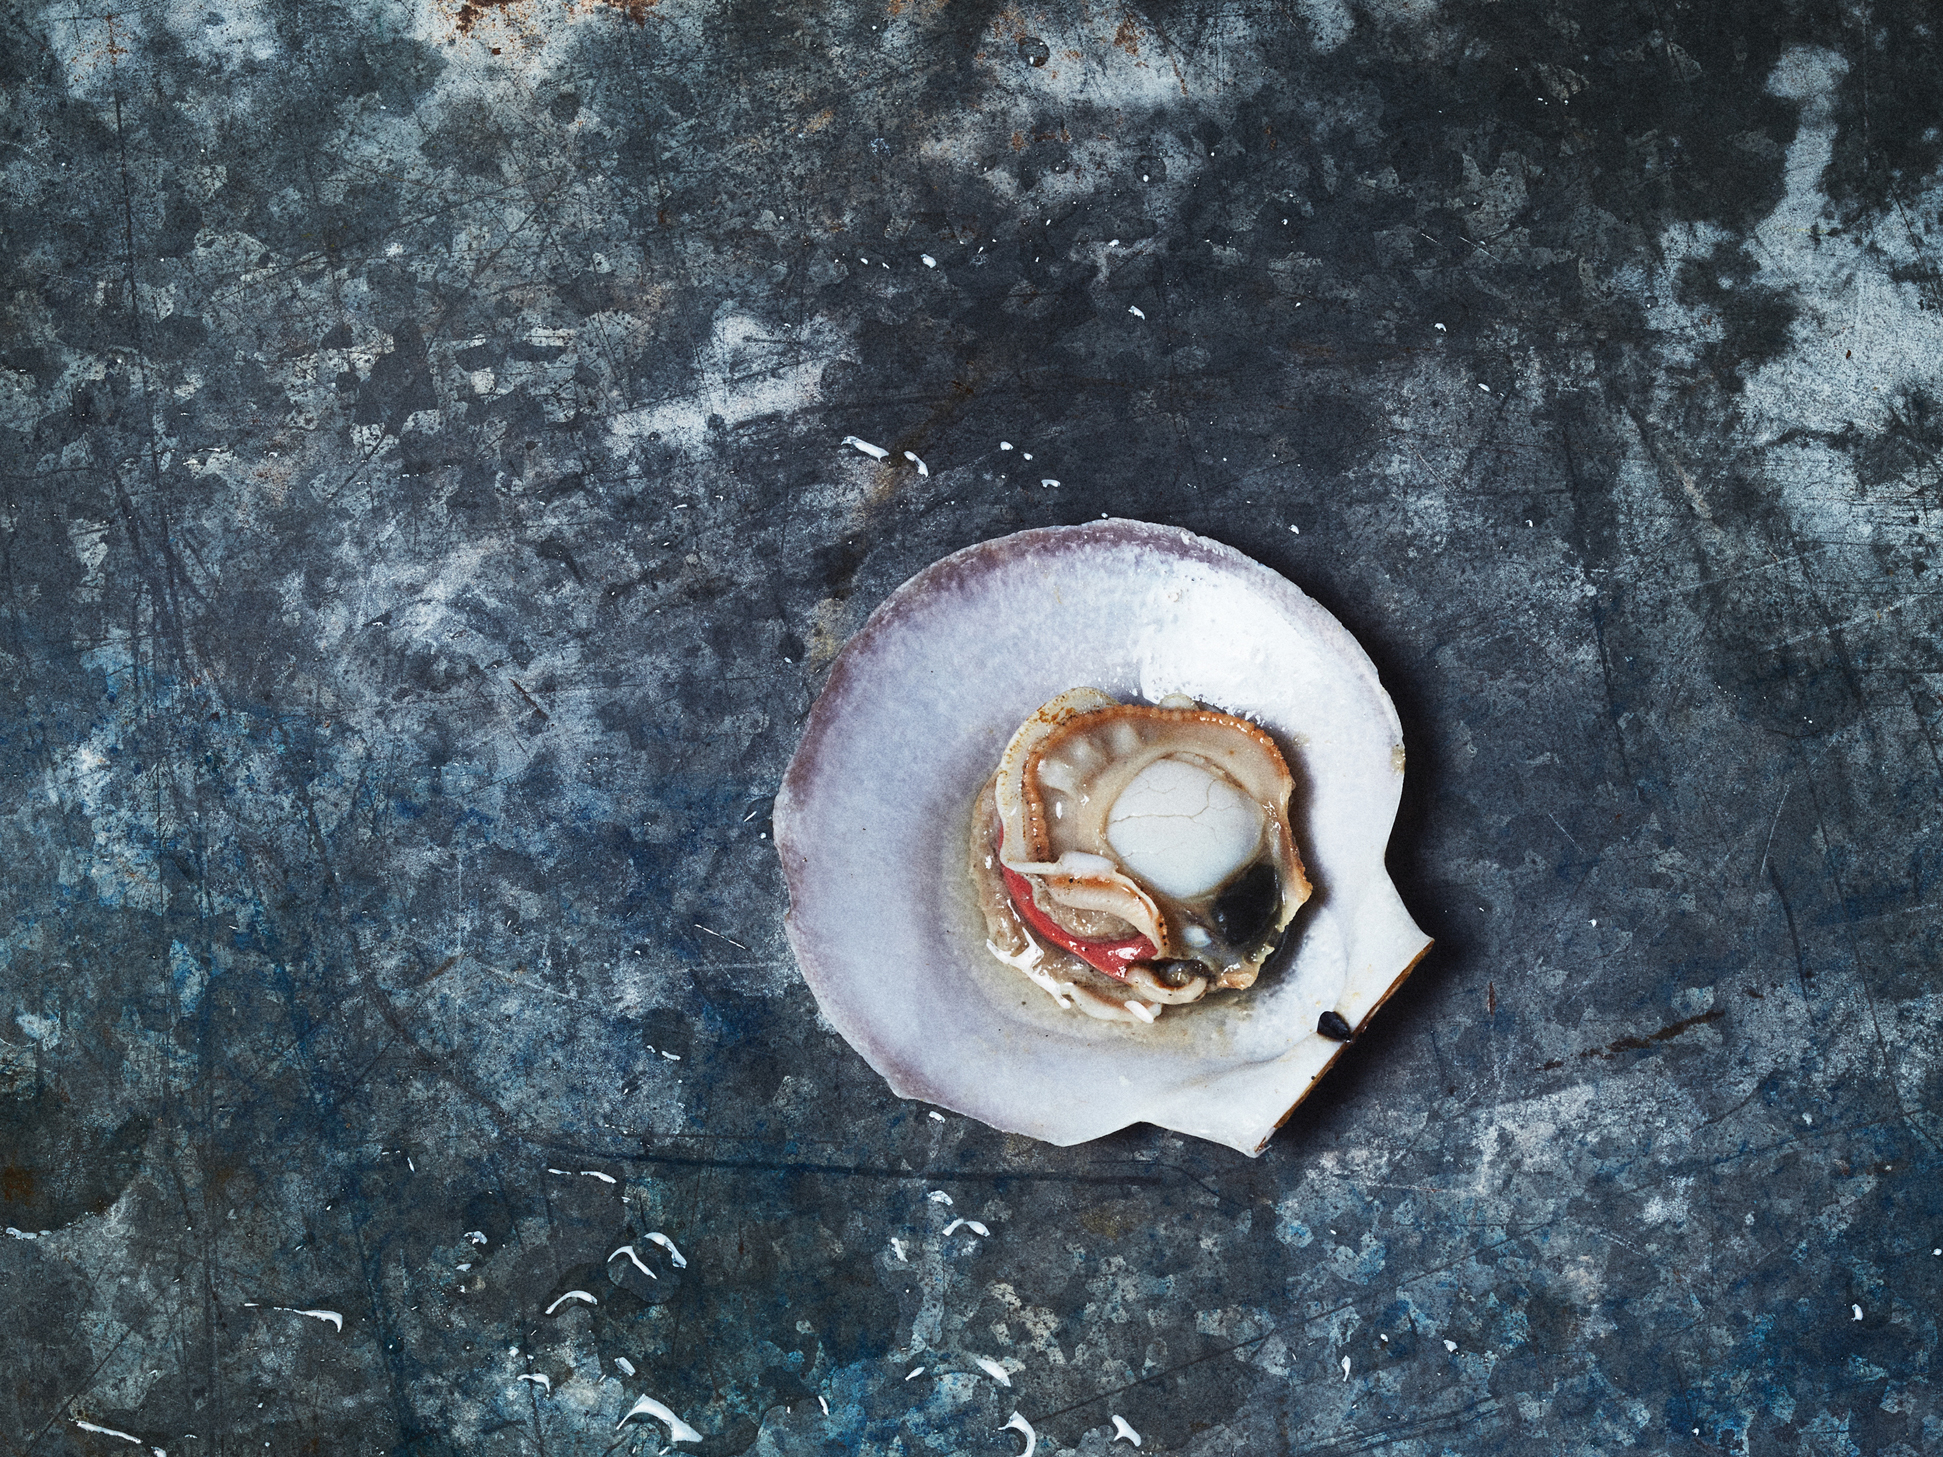 """This dish features a scallop in its shell. Bivalves, like scallops are threatened by rising ocean acidification. Wist left it in the shell, so people would think of it """"as an animal and not just a scallop on a plate."""""""